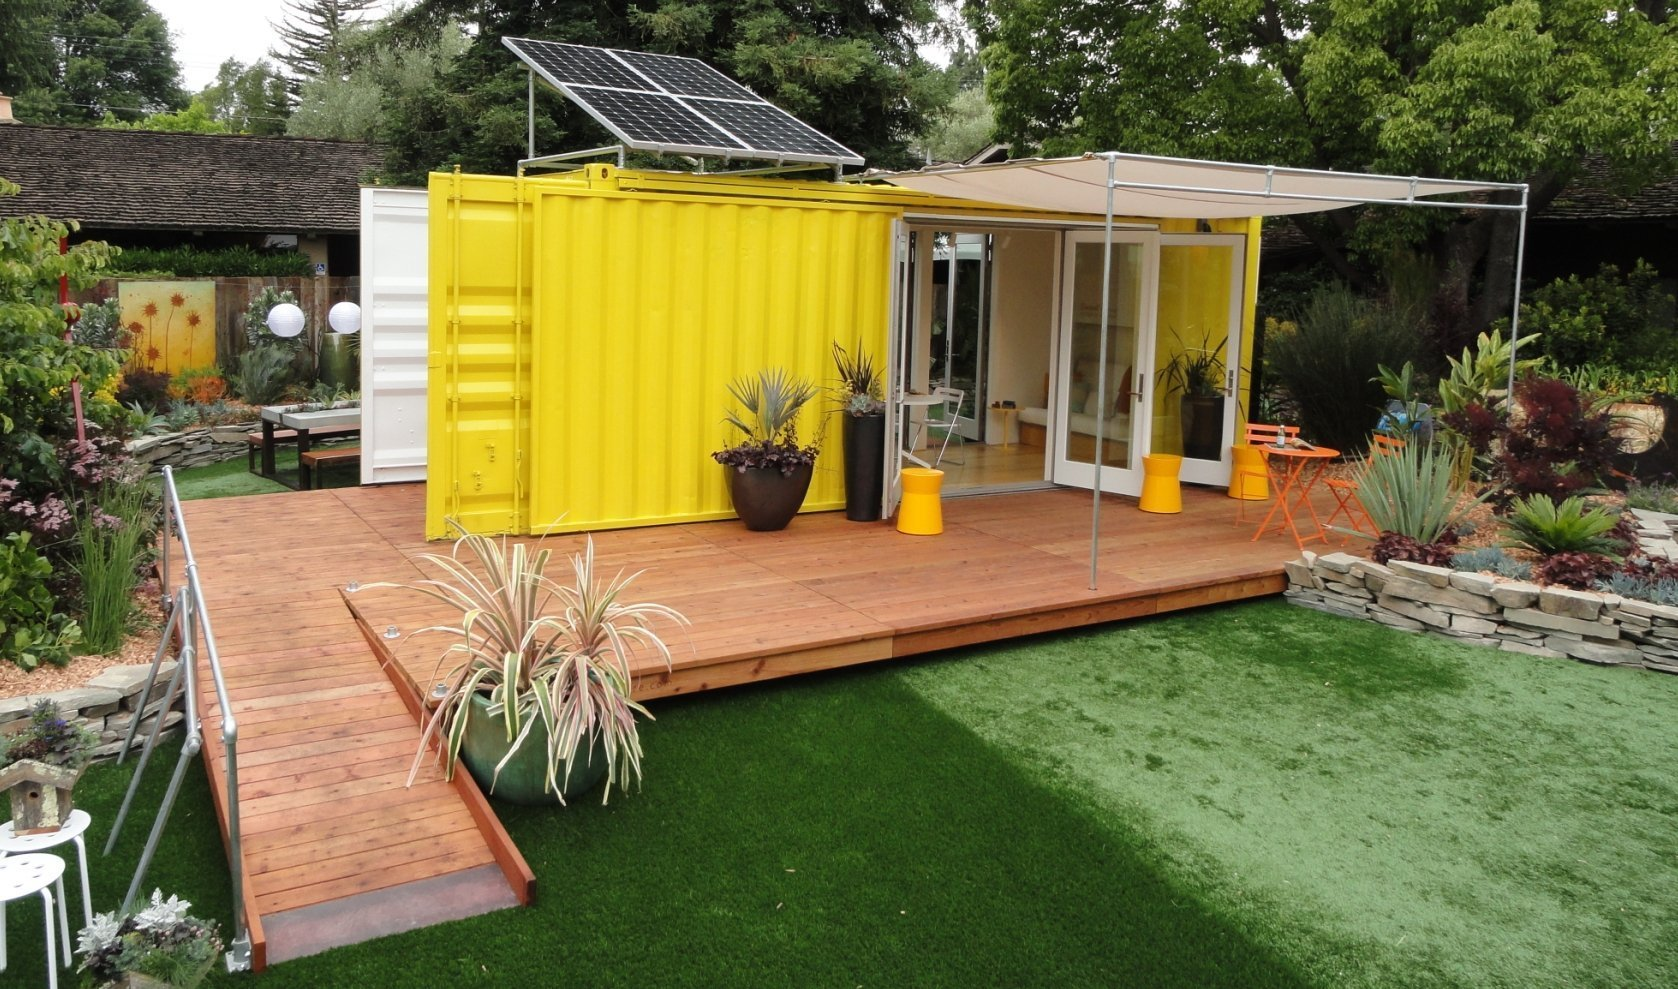 Best Kitchen Gallery: From The Home Front Tiny Cargo Container House Is Sunset Idea House of Off Grid Shipping Container Homes  on rachelxblog.com